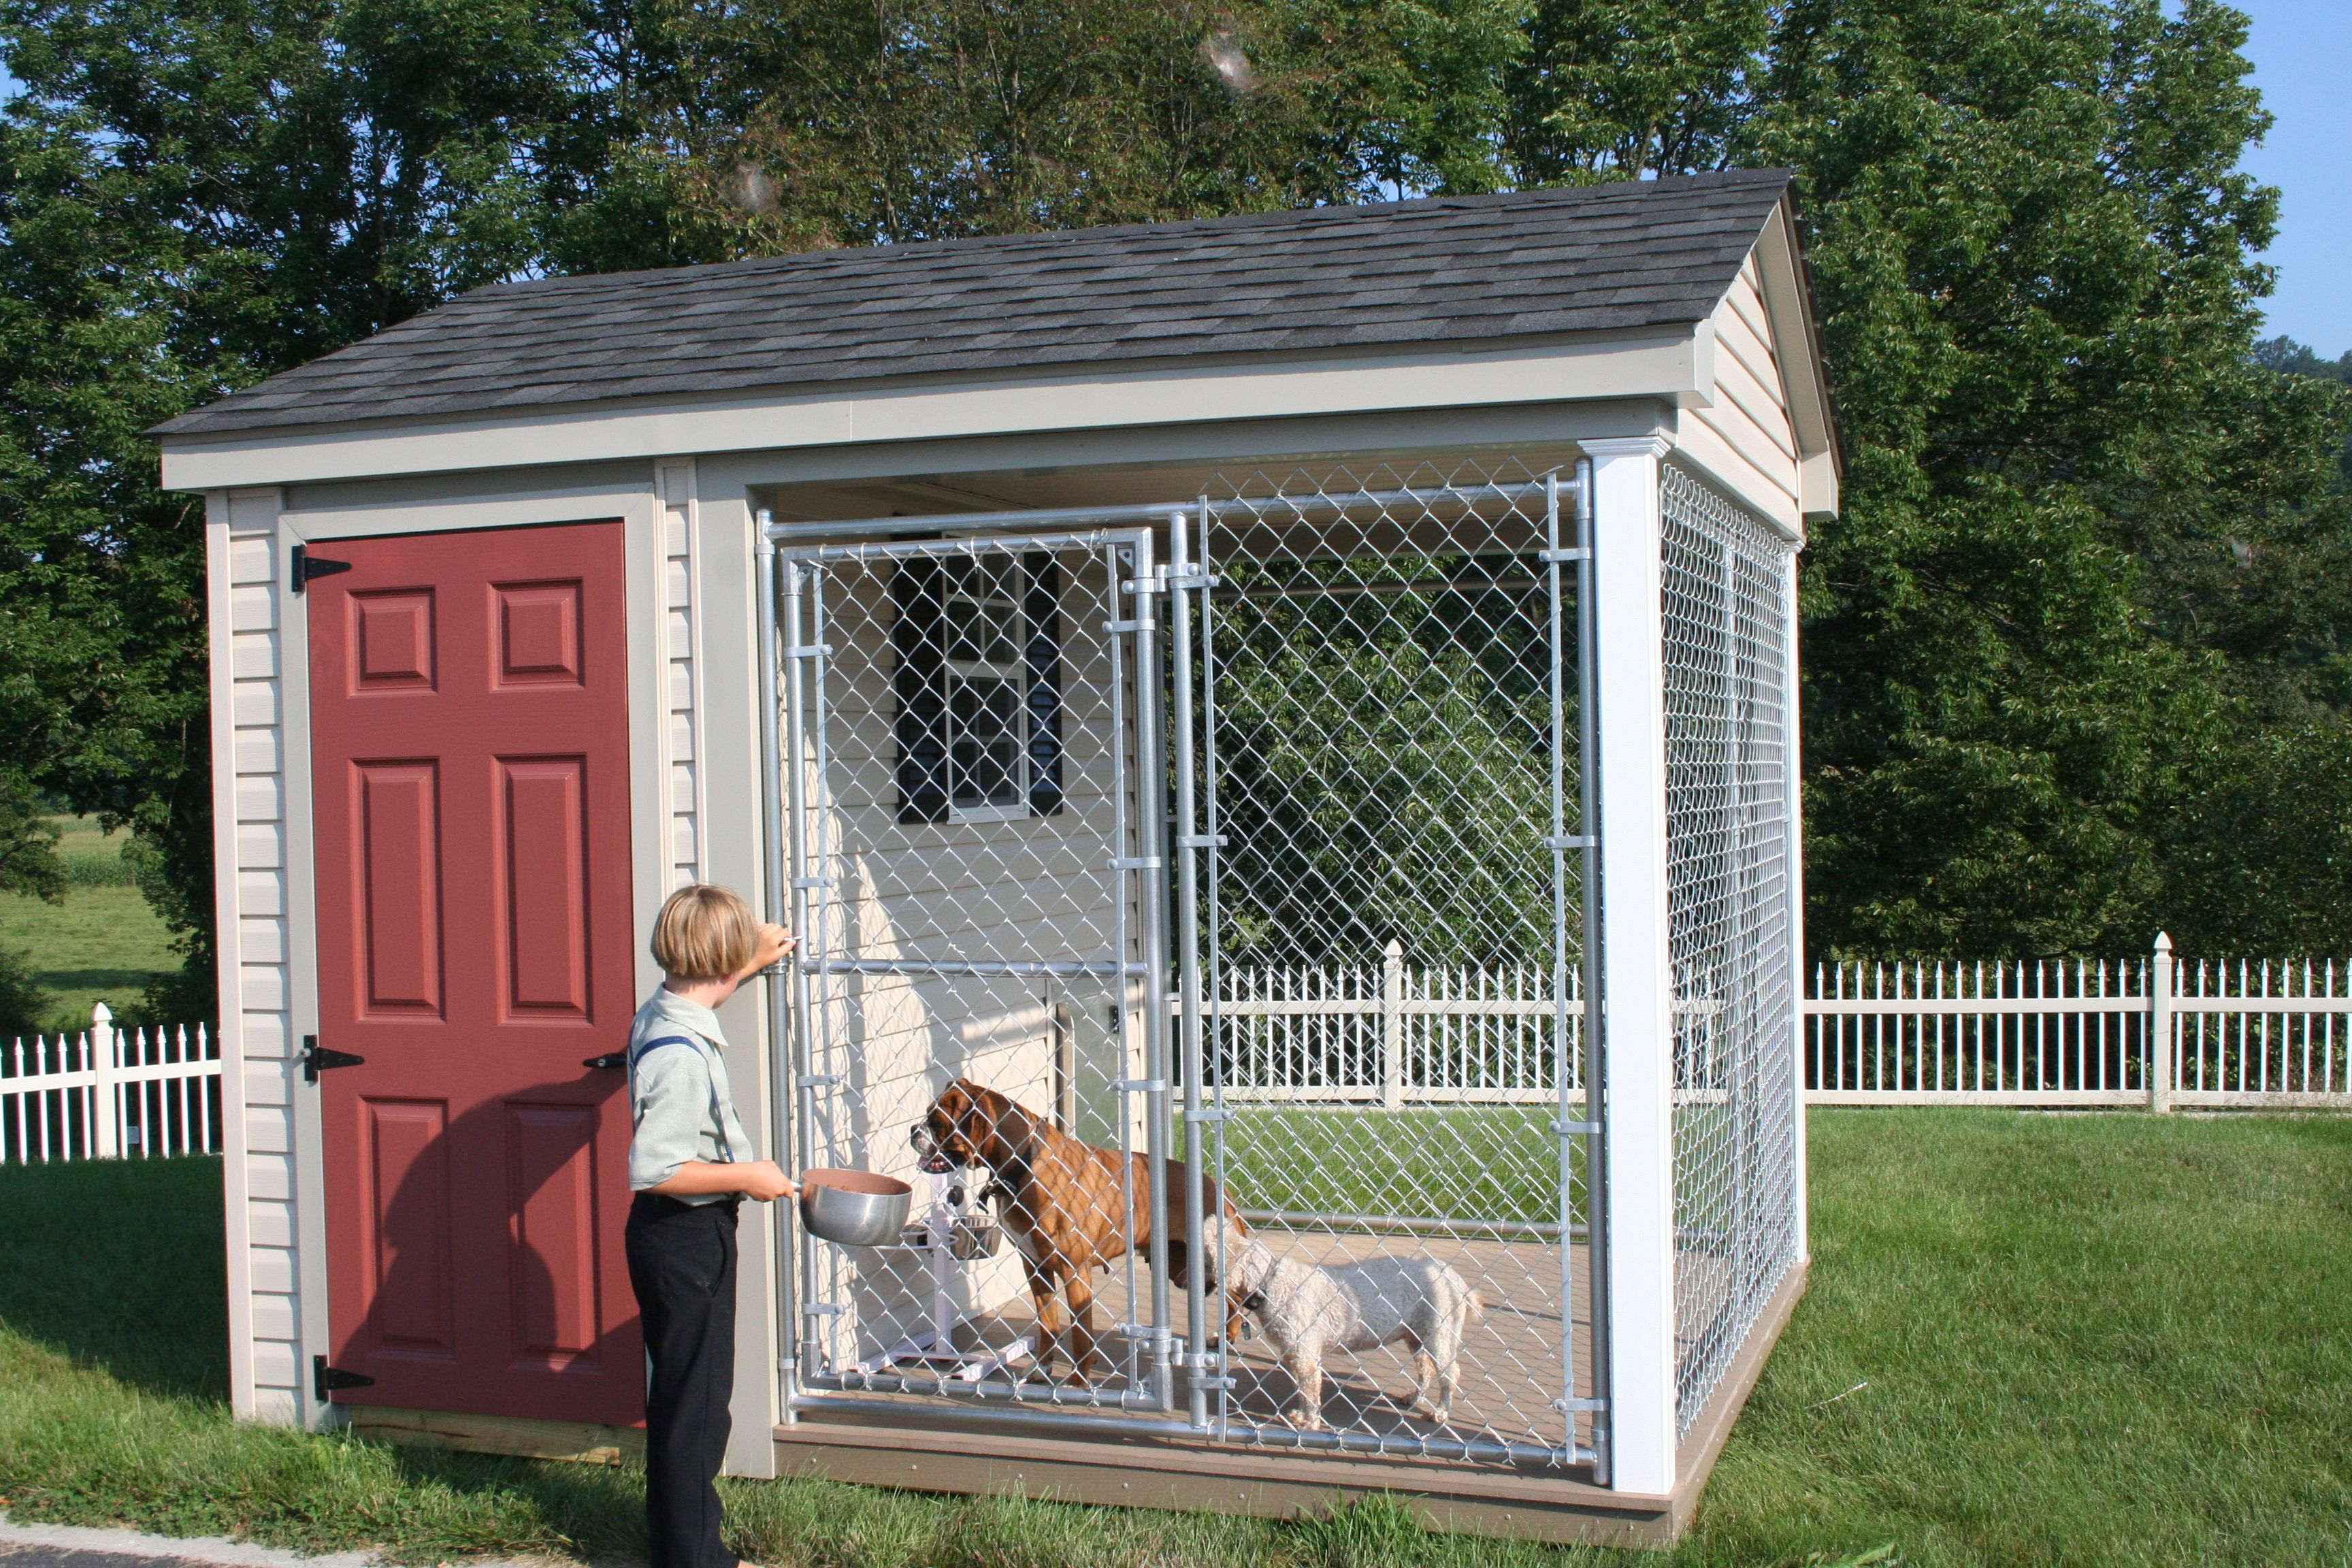 Check Out These Dogs Enjoying Their New Home Dog Kennel Outdoor Dog Dog Houses